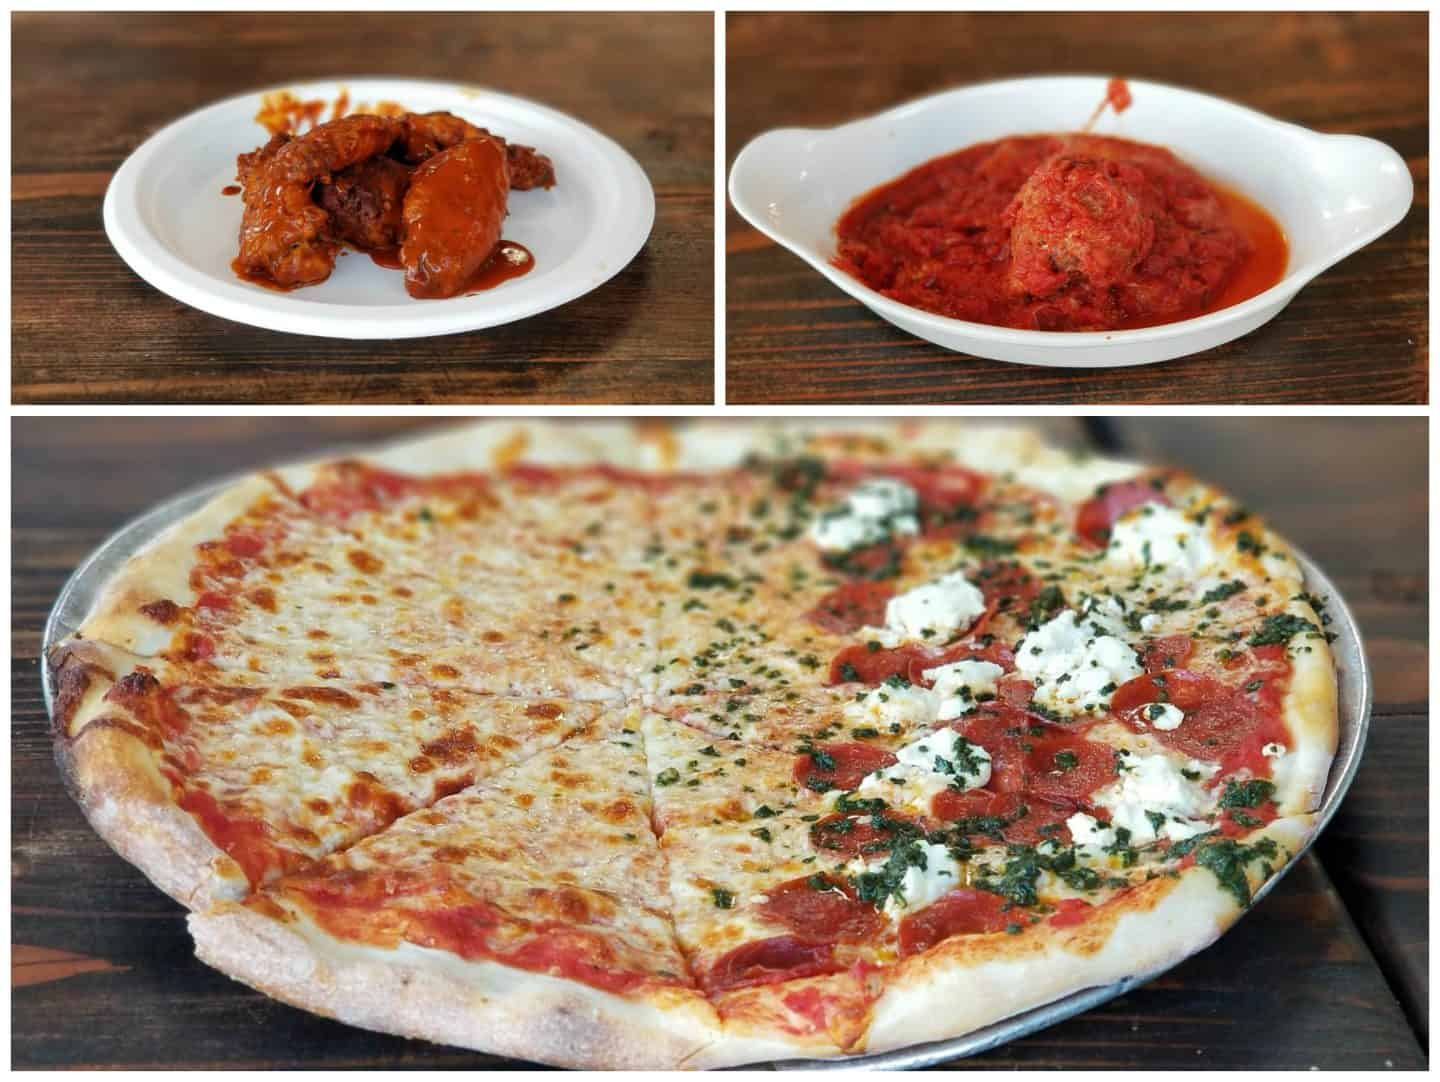 Pizza and appetizers from Landini's Pizzeria